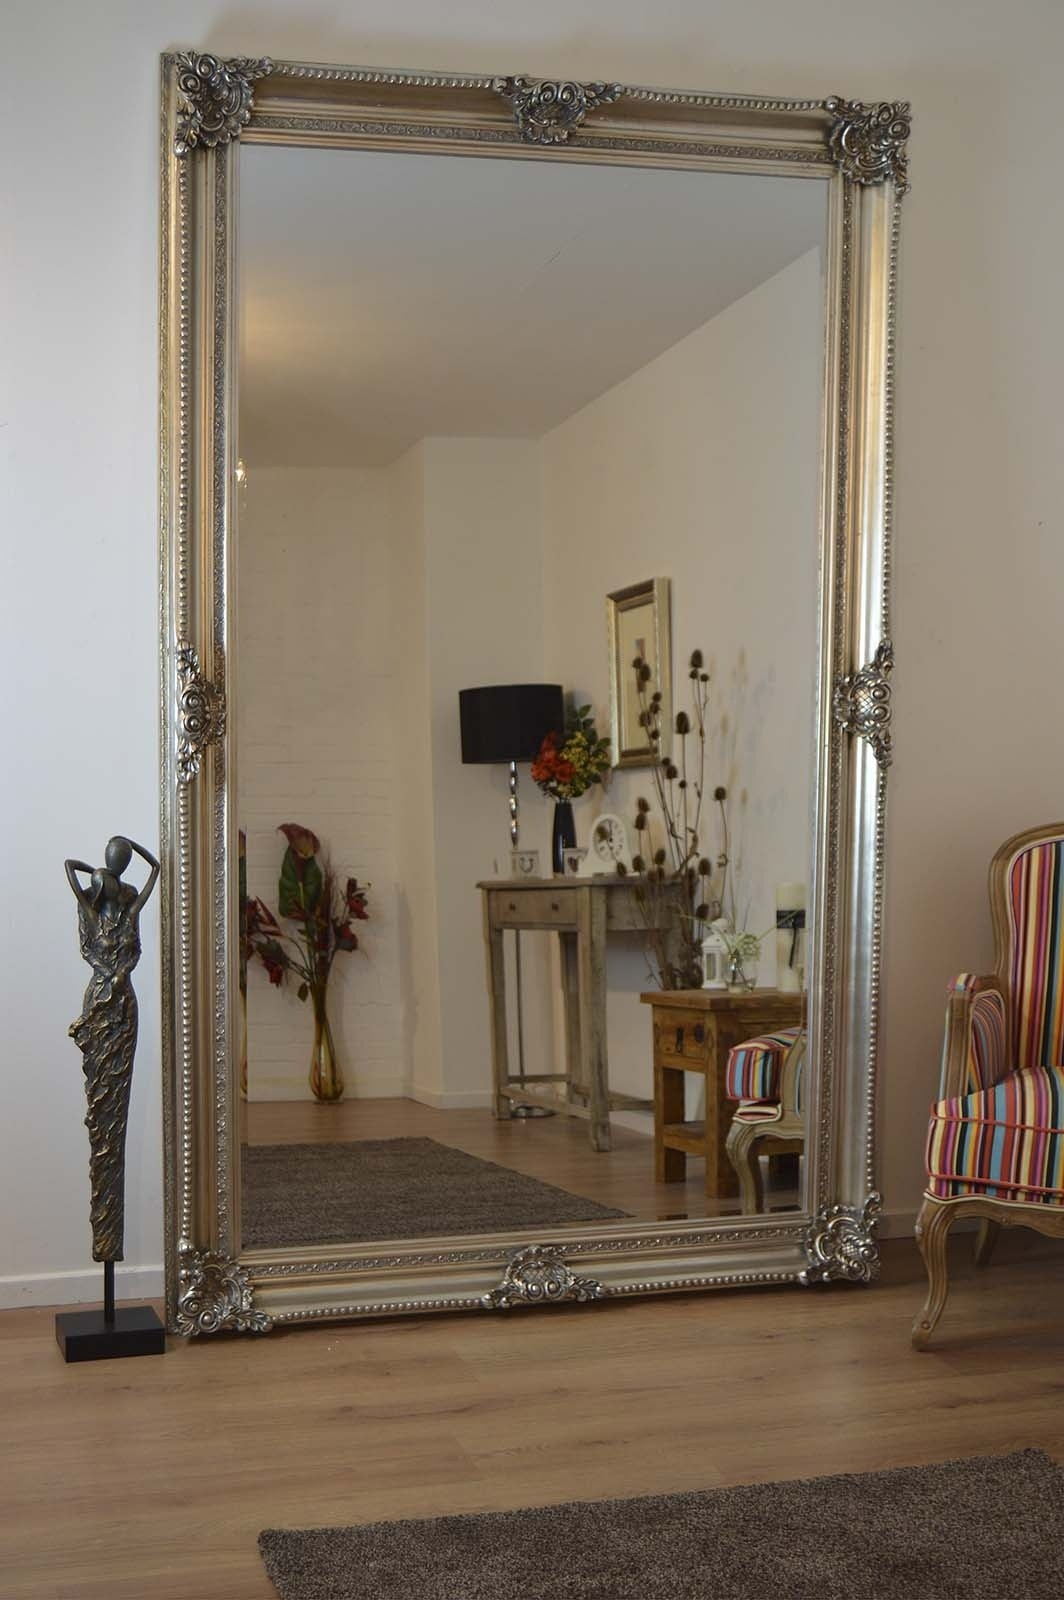 V Large Antique Style Silver Rectangle Wood Wall Mirror Leaner 8ft Throughout Large Antique Wall Mirrors (Image 15 of 15)